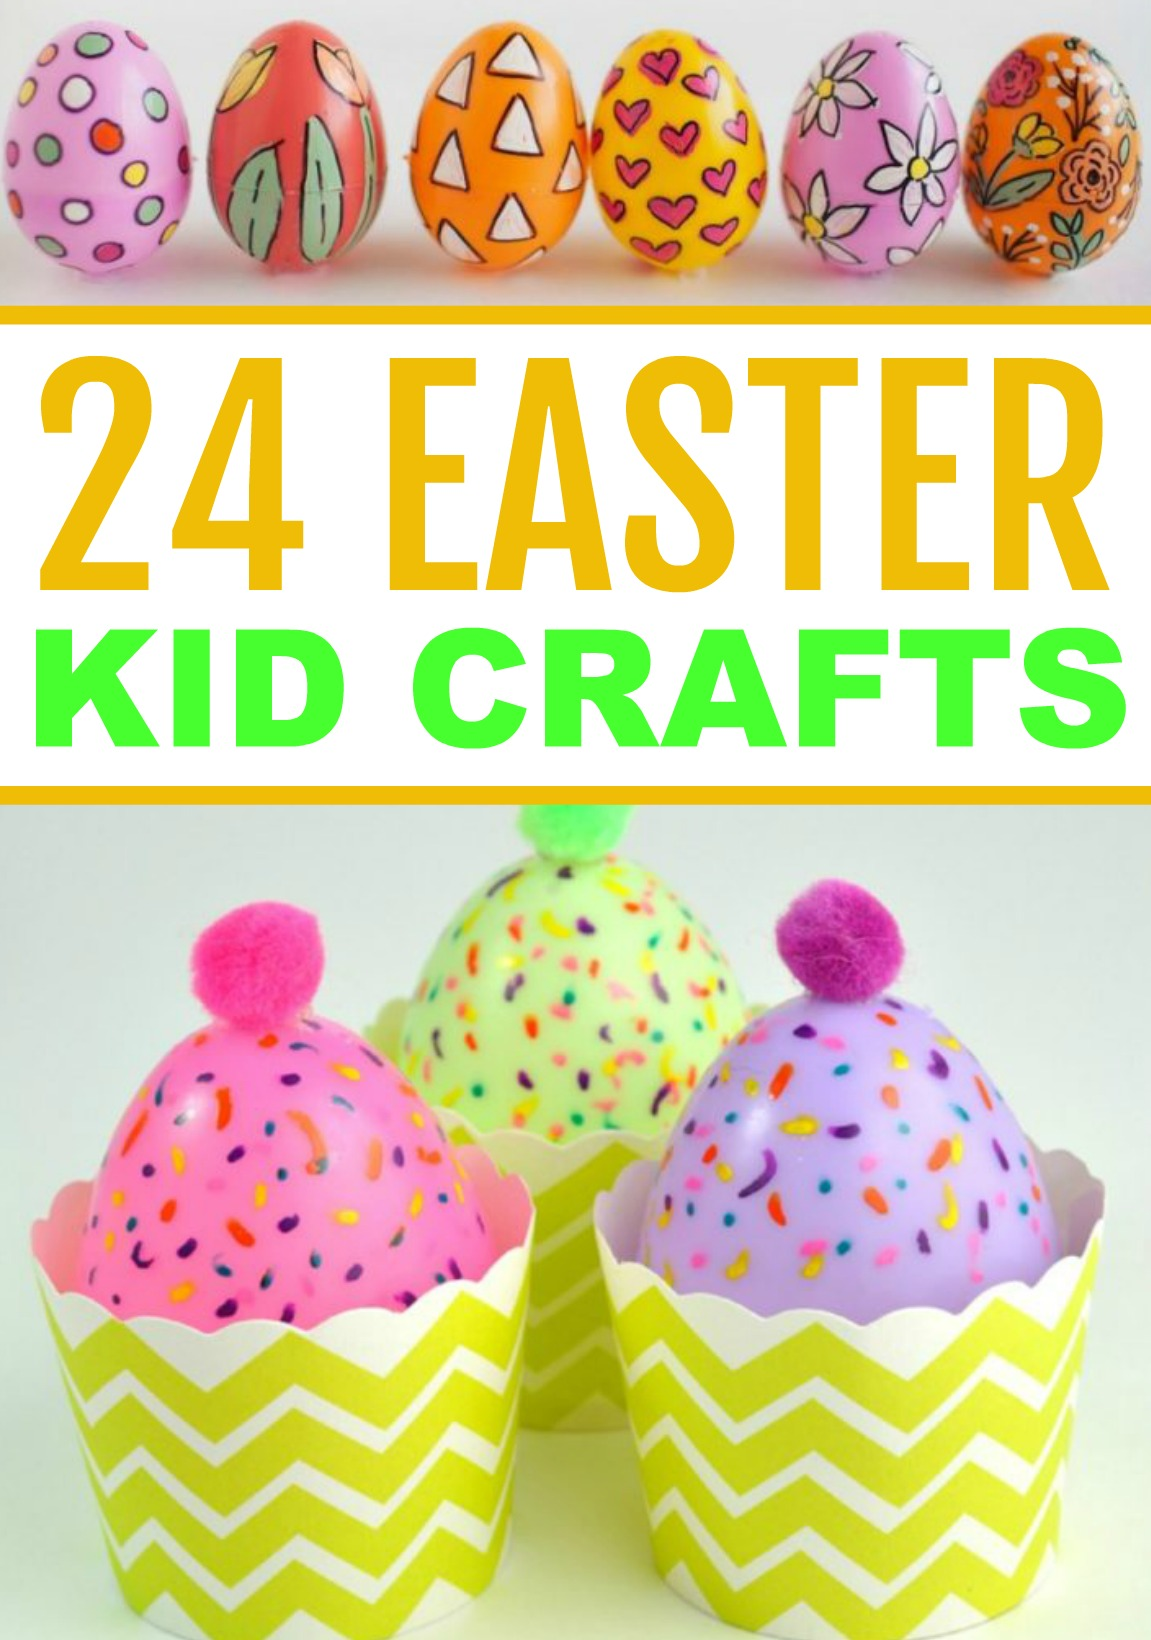 24 Easter Kid Crafts A Little Craft In Your Day